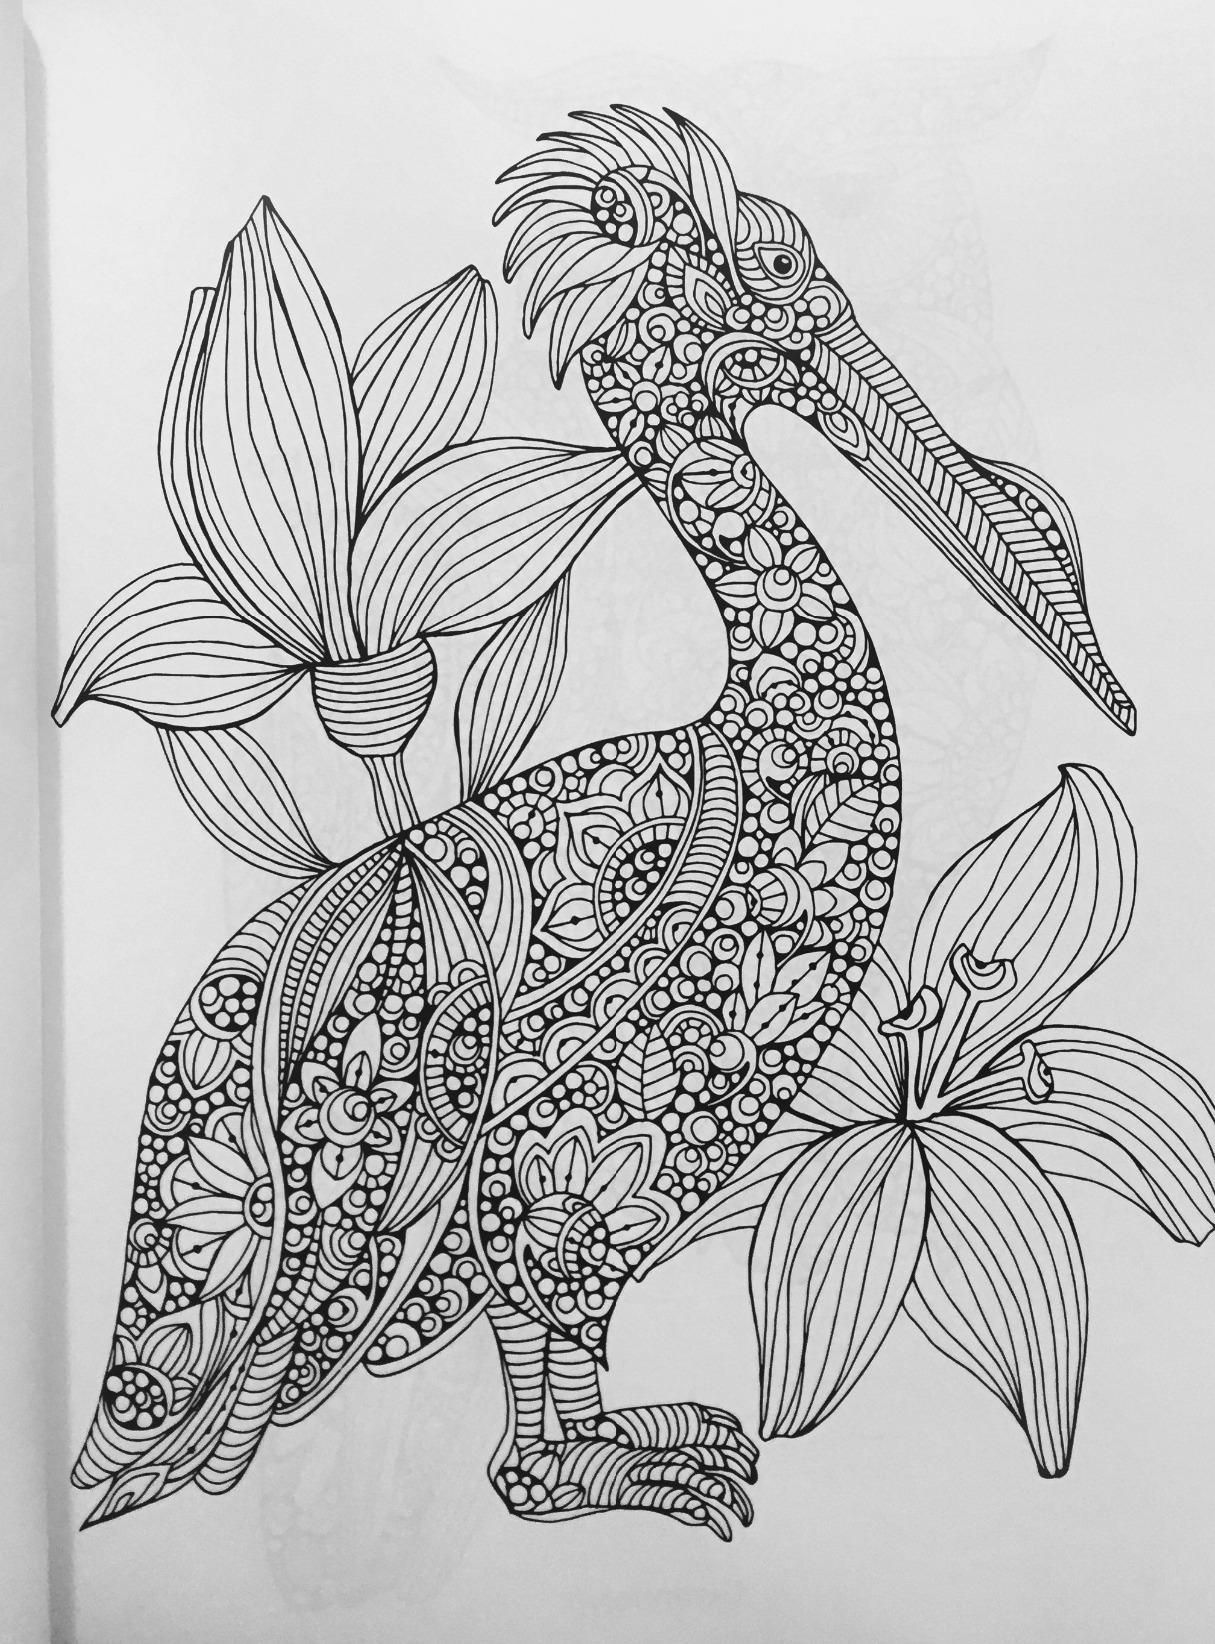 Amazing Best Coloring Books For Adults Huge Blue Is The Warmest Color Book Regular Giant Coloring Books Coloring Book App Young Gangsta Rap Coloring Book ColouredBible Coloring Book Amazon.com: Creative Coloring Birds: Art Activity Pages To Relax ..